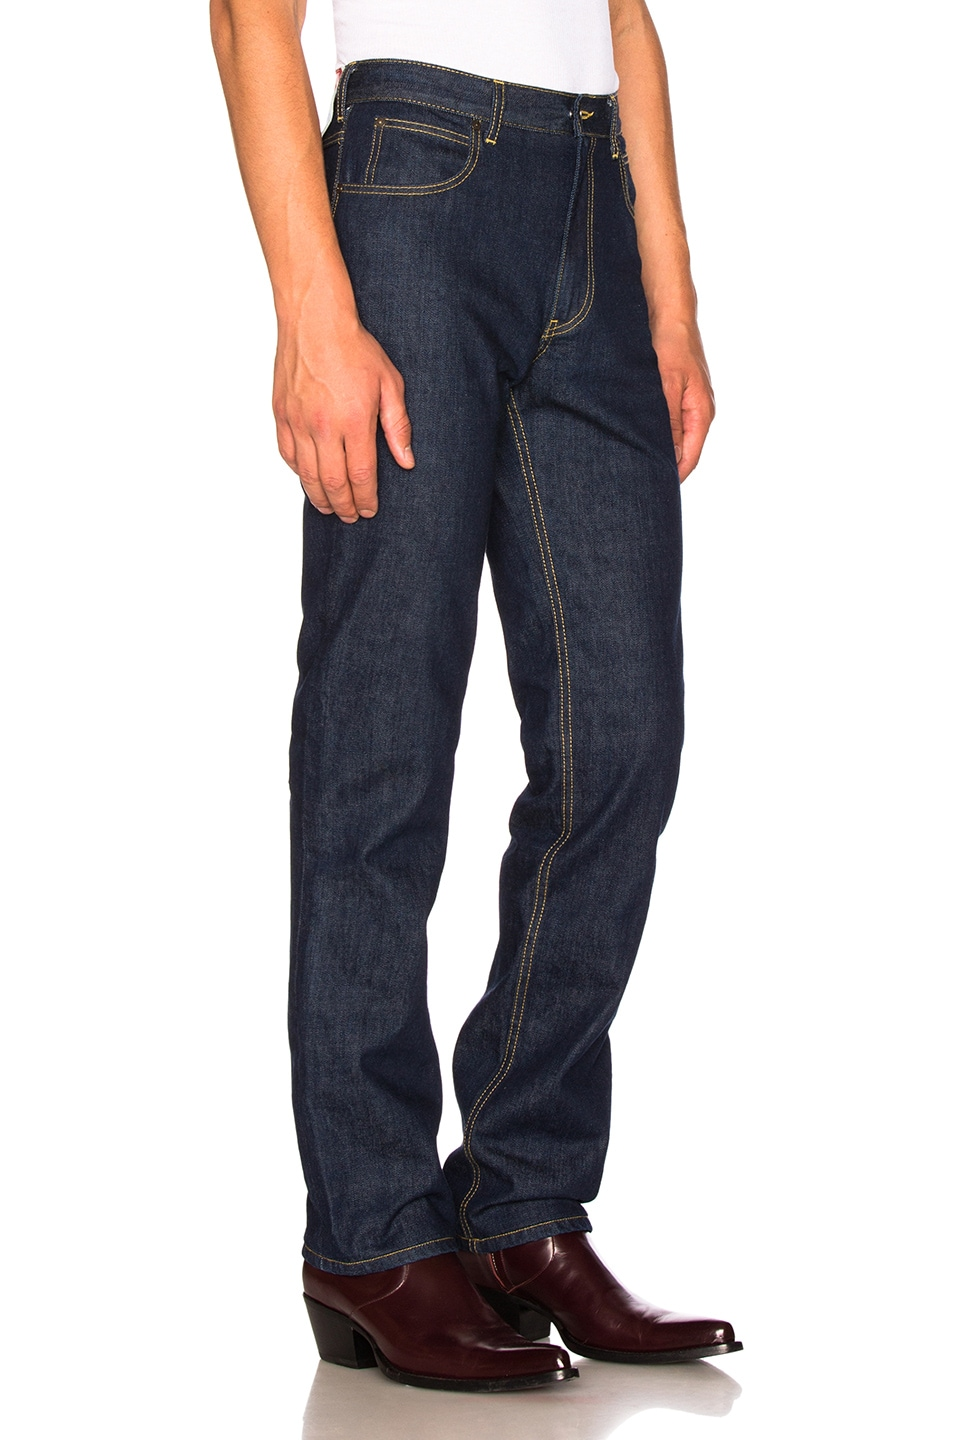 Wide-leg Denim Jeans CALVIN KLEIN 205W39NYC Discount Footaction Free Shipping 2018 New Clearance Big Discount Buy Cheap Cheapest Price ZXwT7zdkv